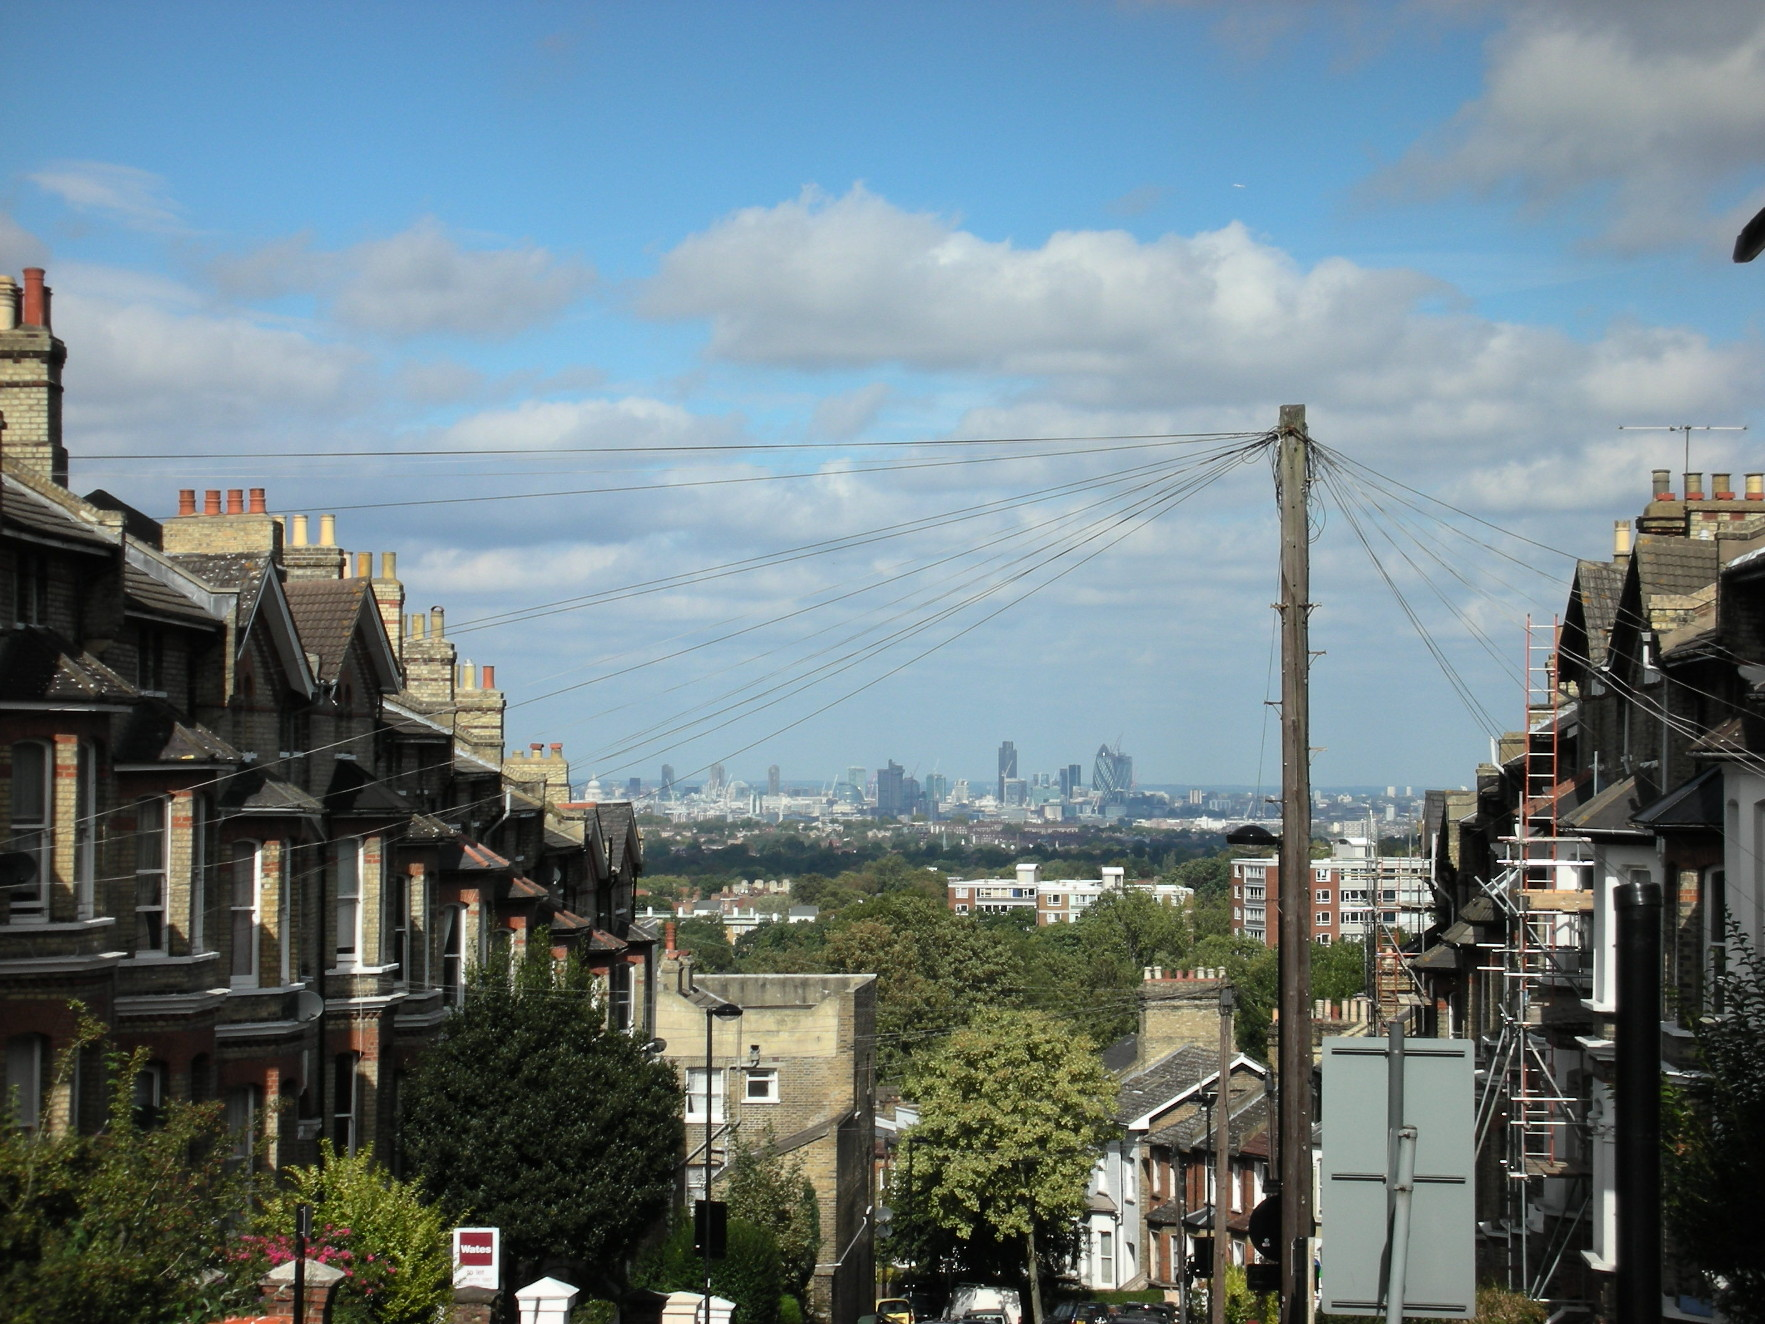 View of London with houses and flats